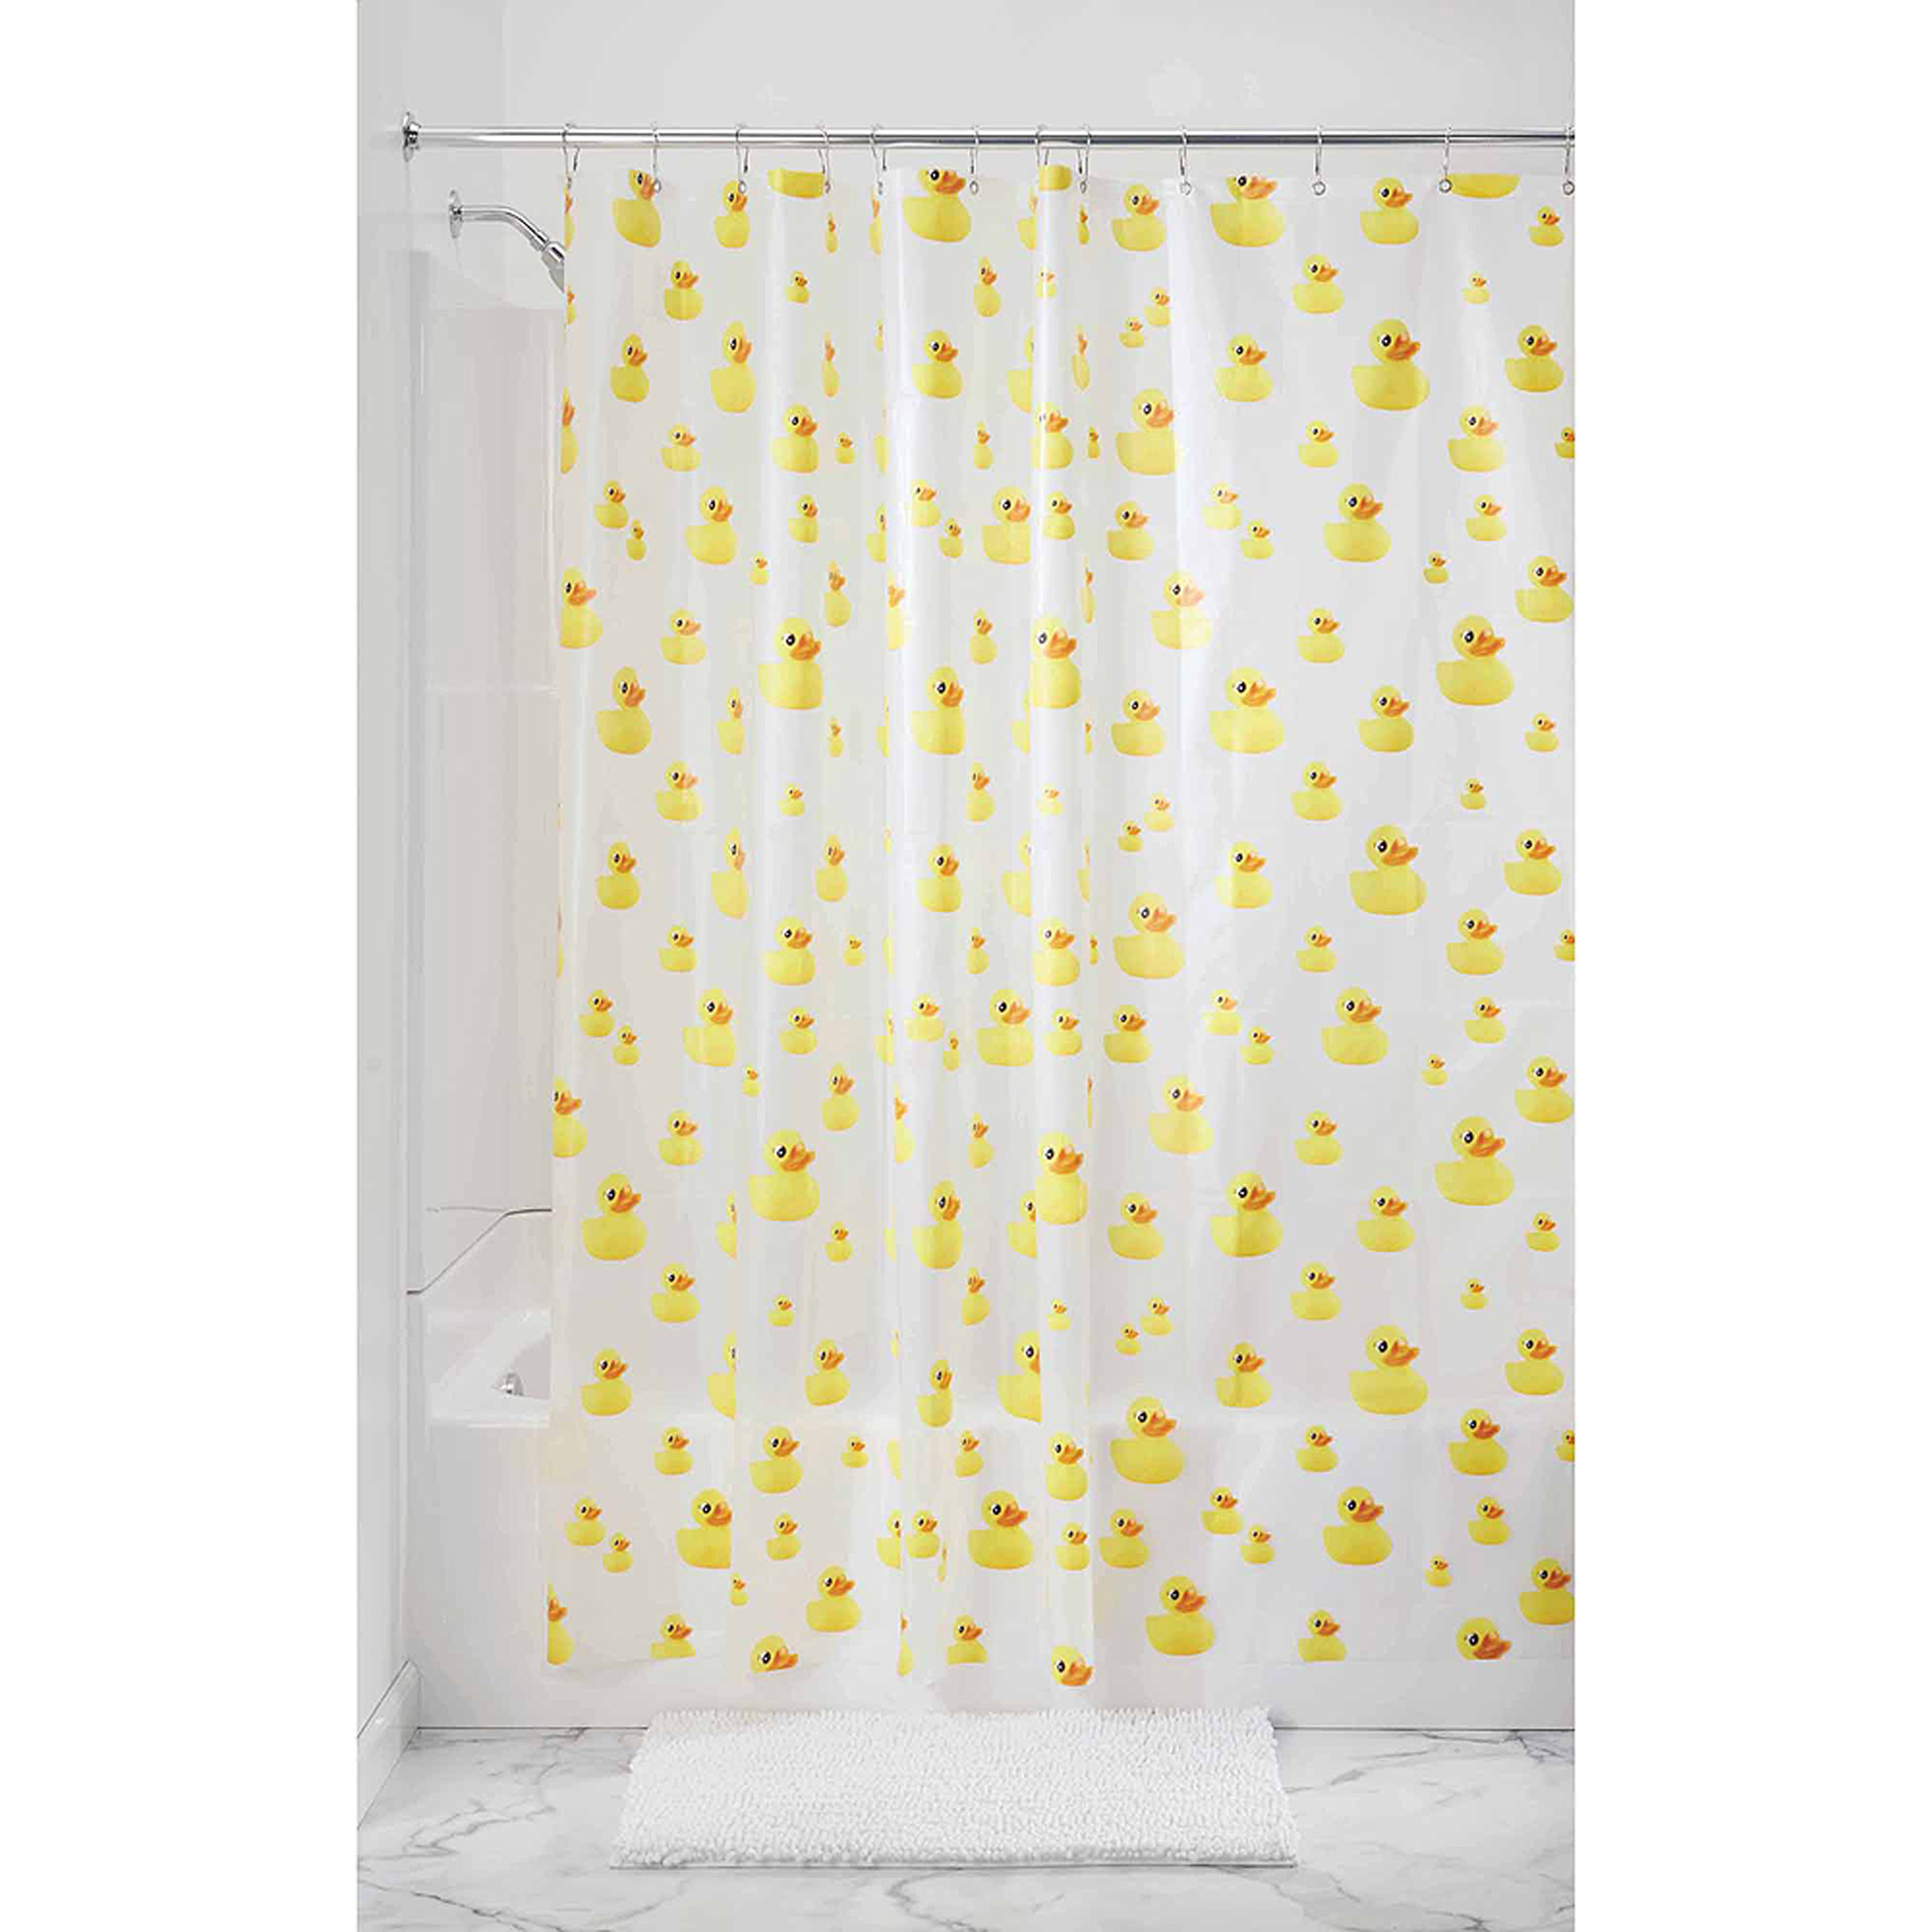 Cute Girly Shower Curtains Mainstays Kids Woodland Creatures Fabric Shower Curtain 1 Each